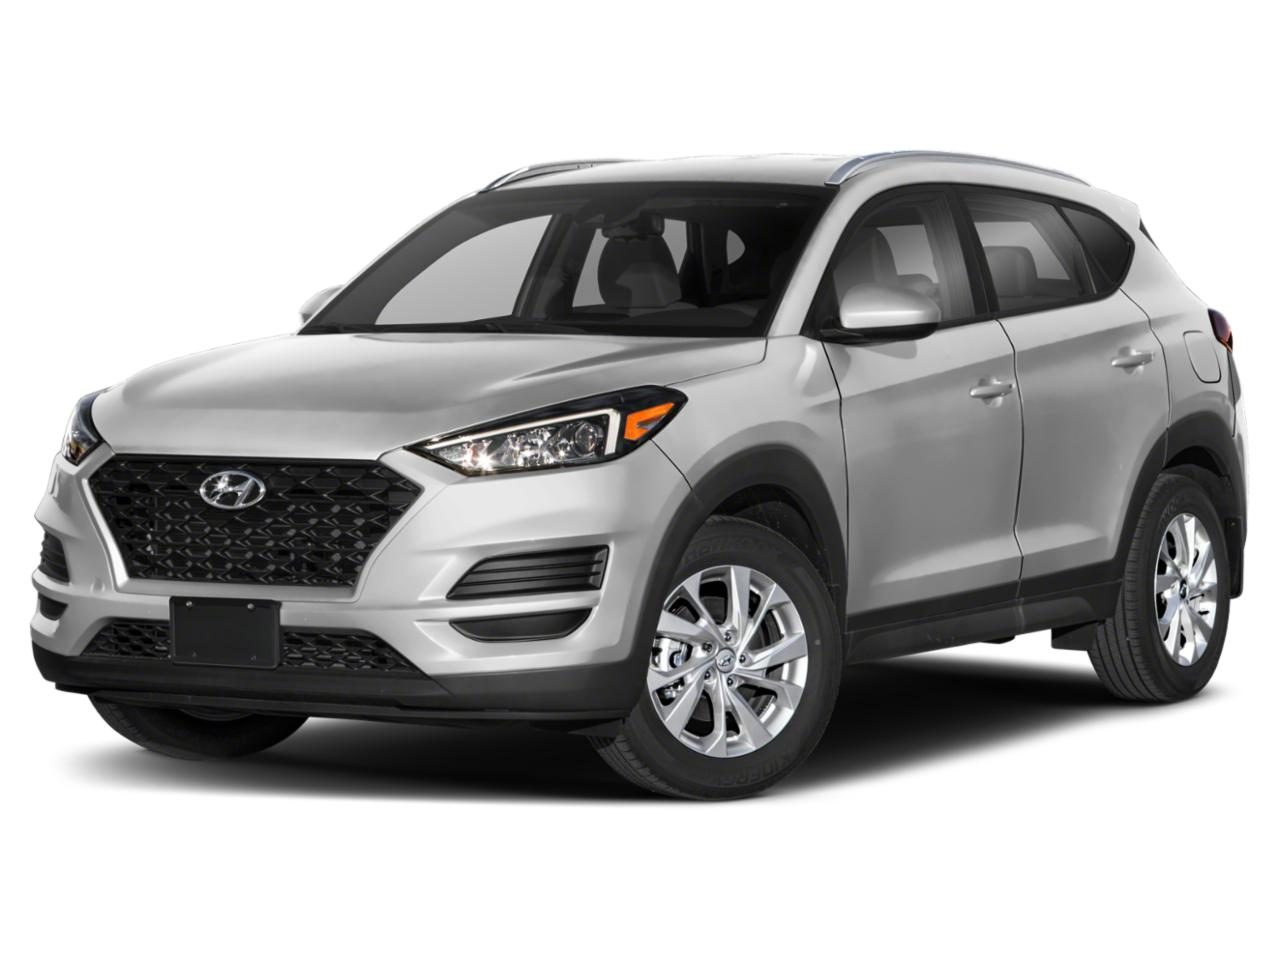 2020 Hyundai Tucson Vehicle Photo in Nashua, NH 03060